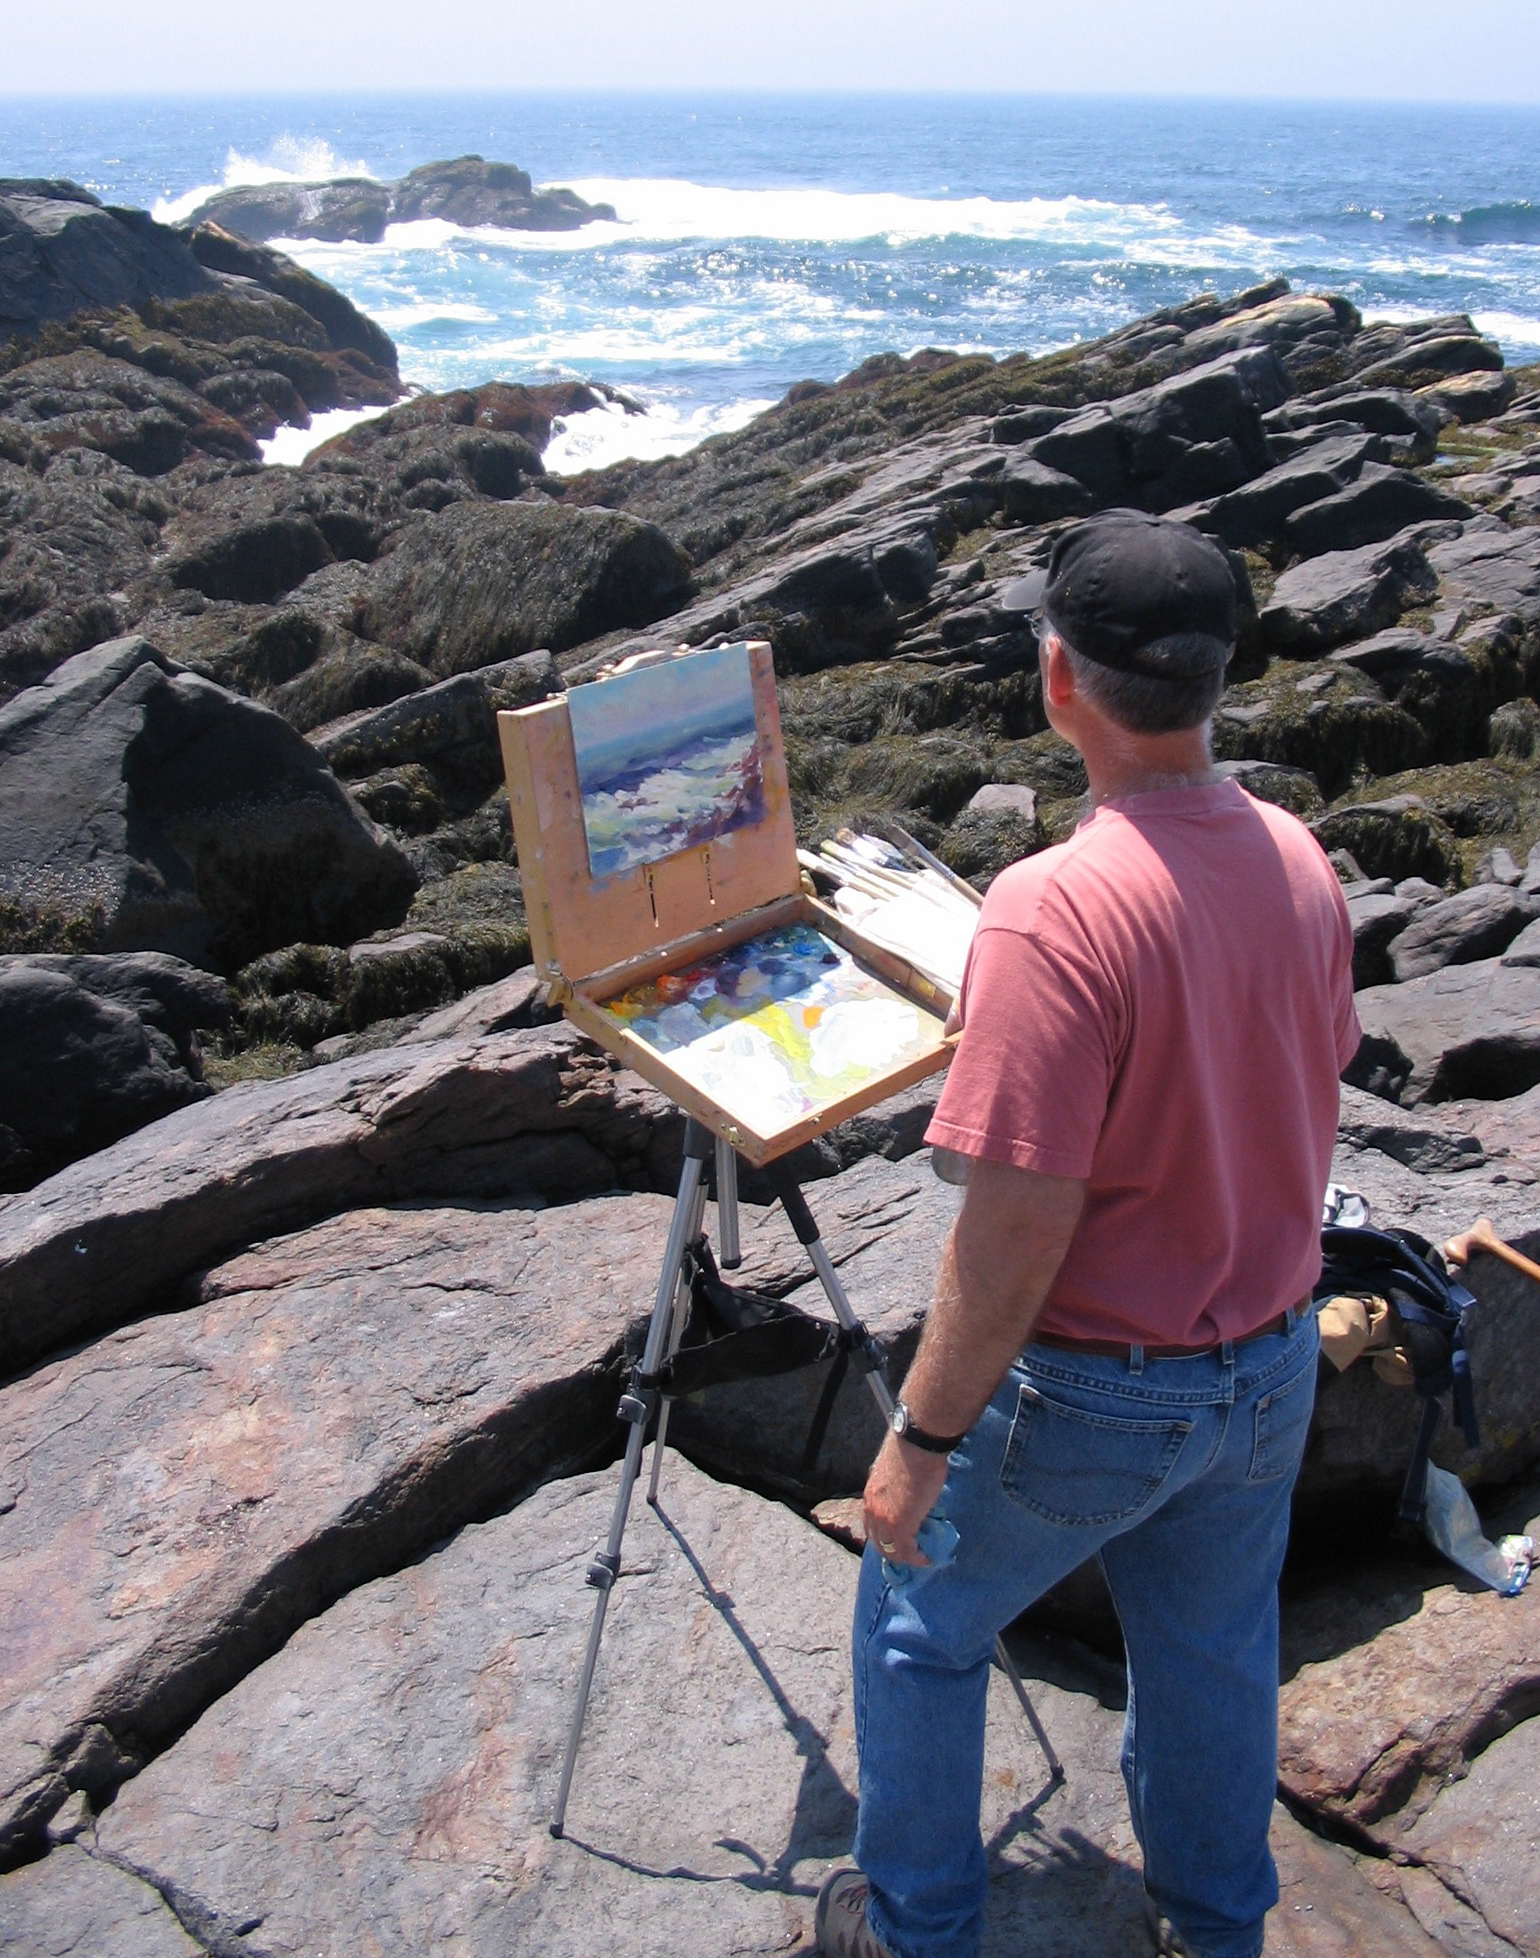 Painting on Monhegan Island, Maine